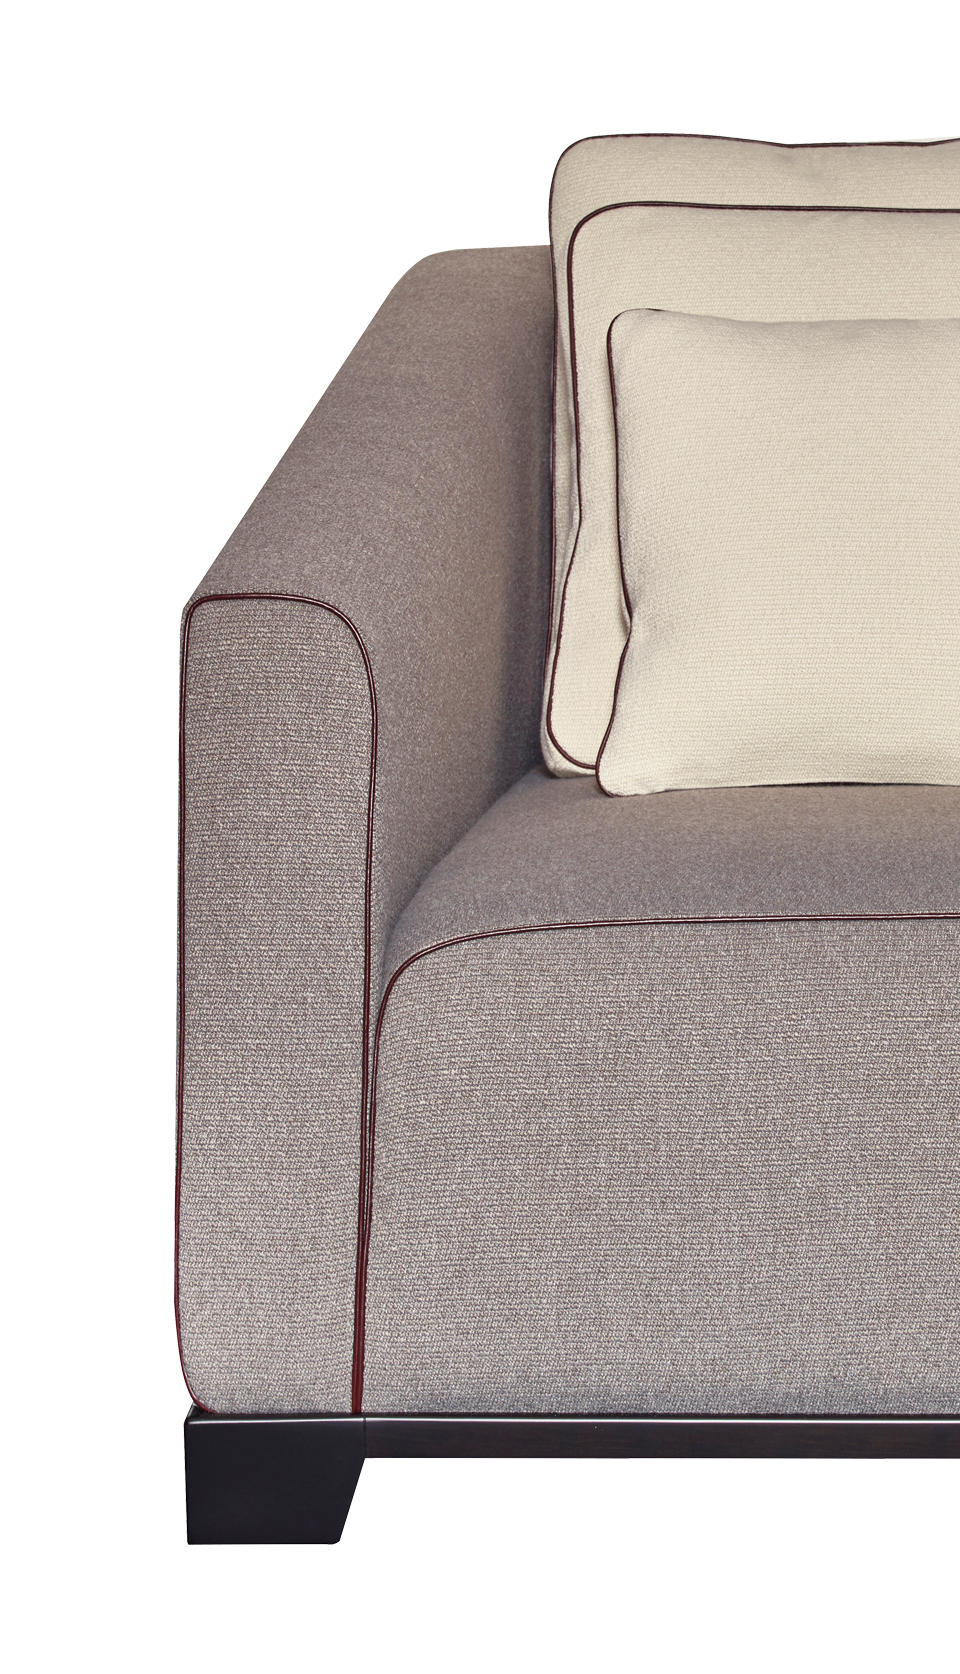 Detail of Martini, an armchair covered in fabric or leather with bronze feet, from Promemoria's catalogue | Promemoria